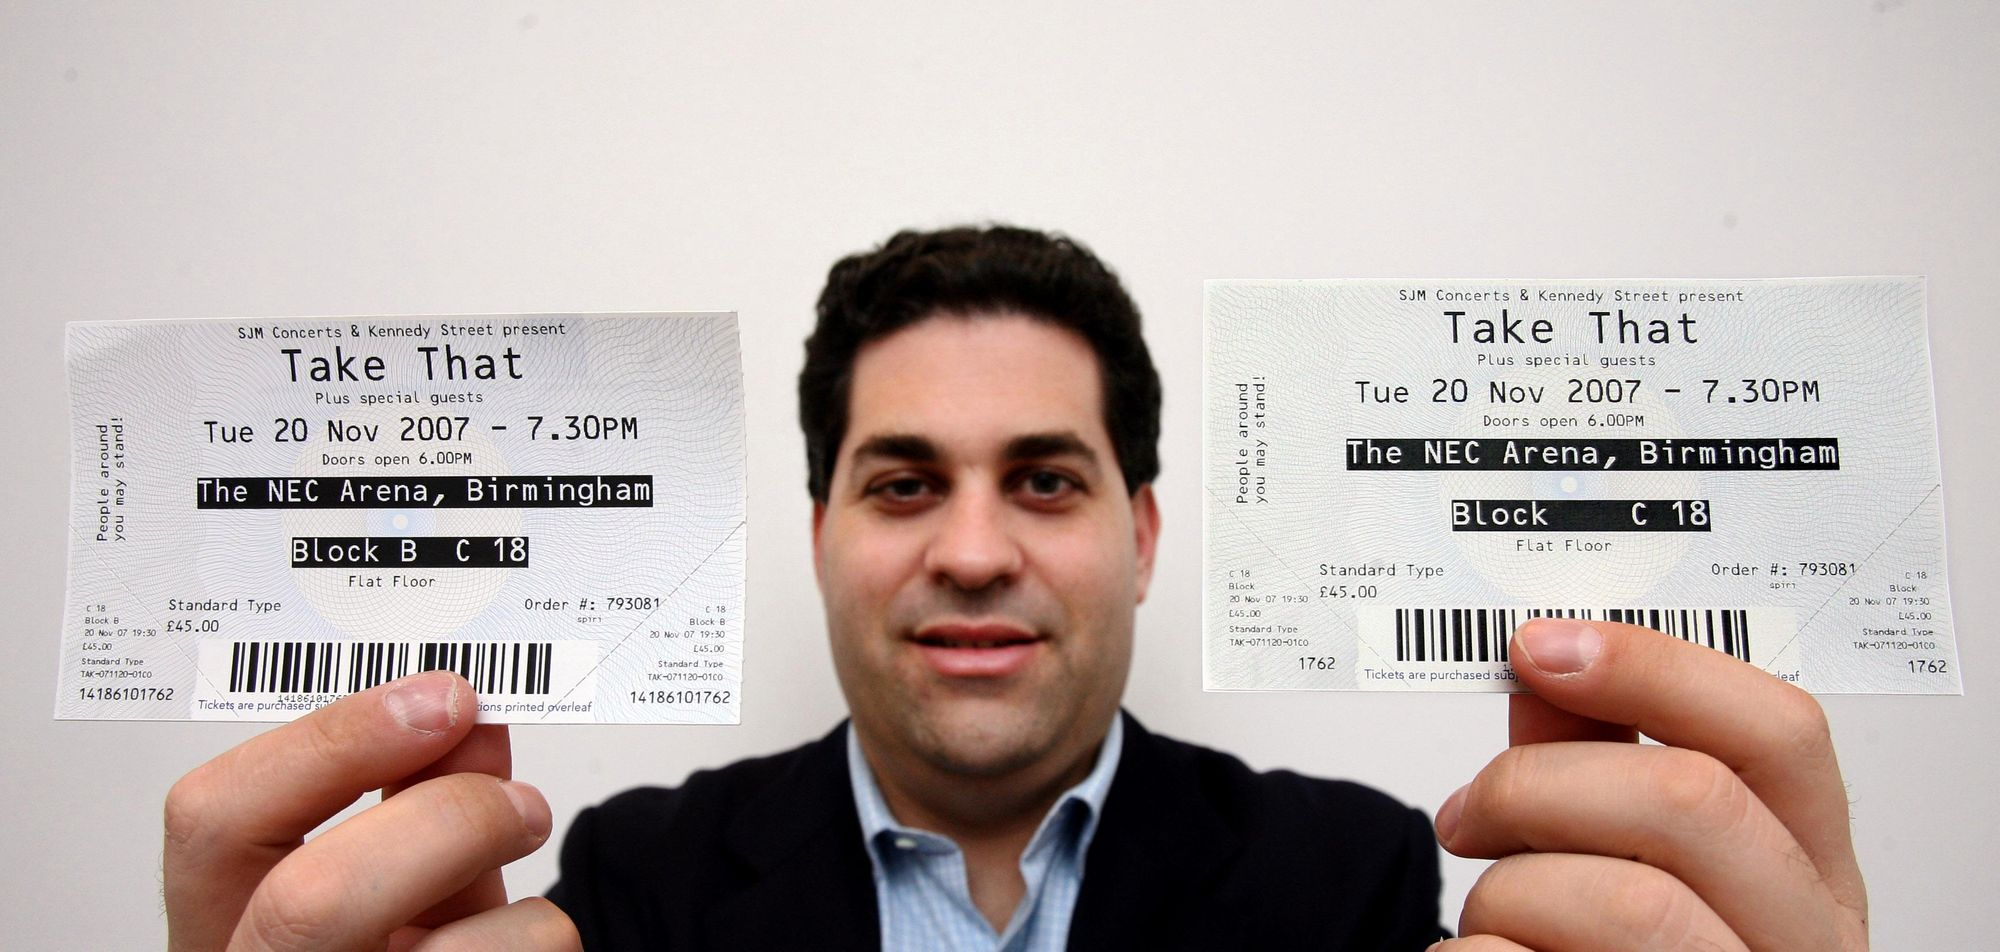 'Stubagogo's' double hit as Moody's cuts Viagogo ratings and StubHub ordered to stop 'literally lying to your face'